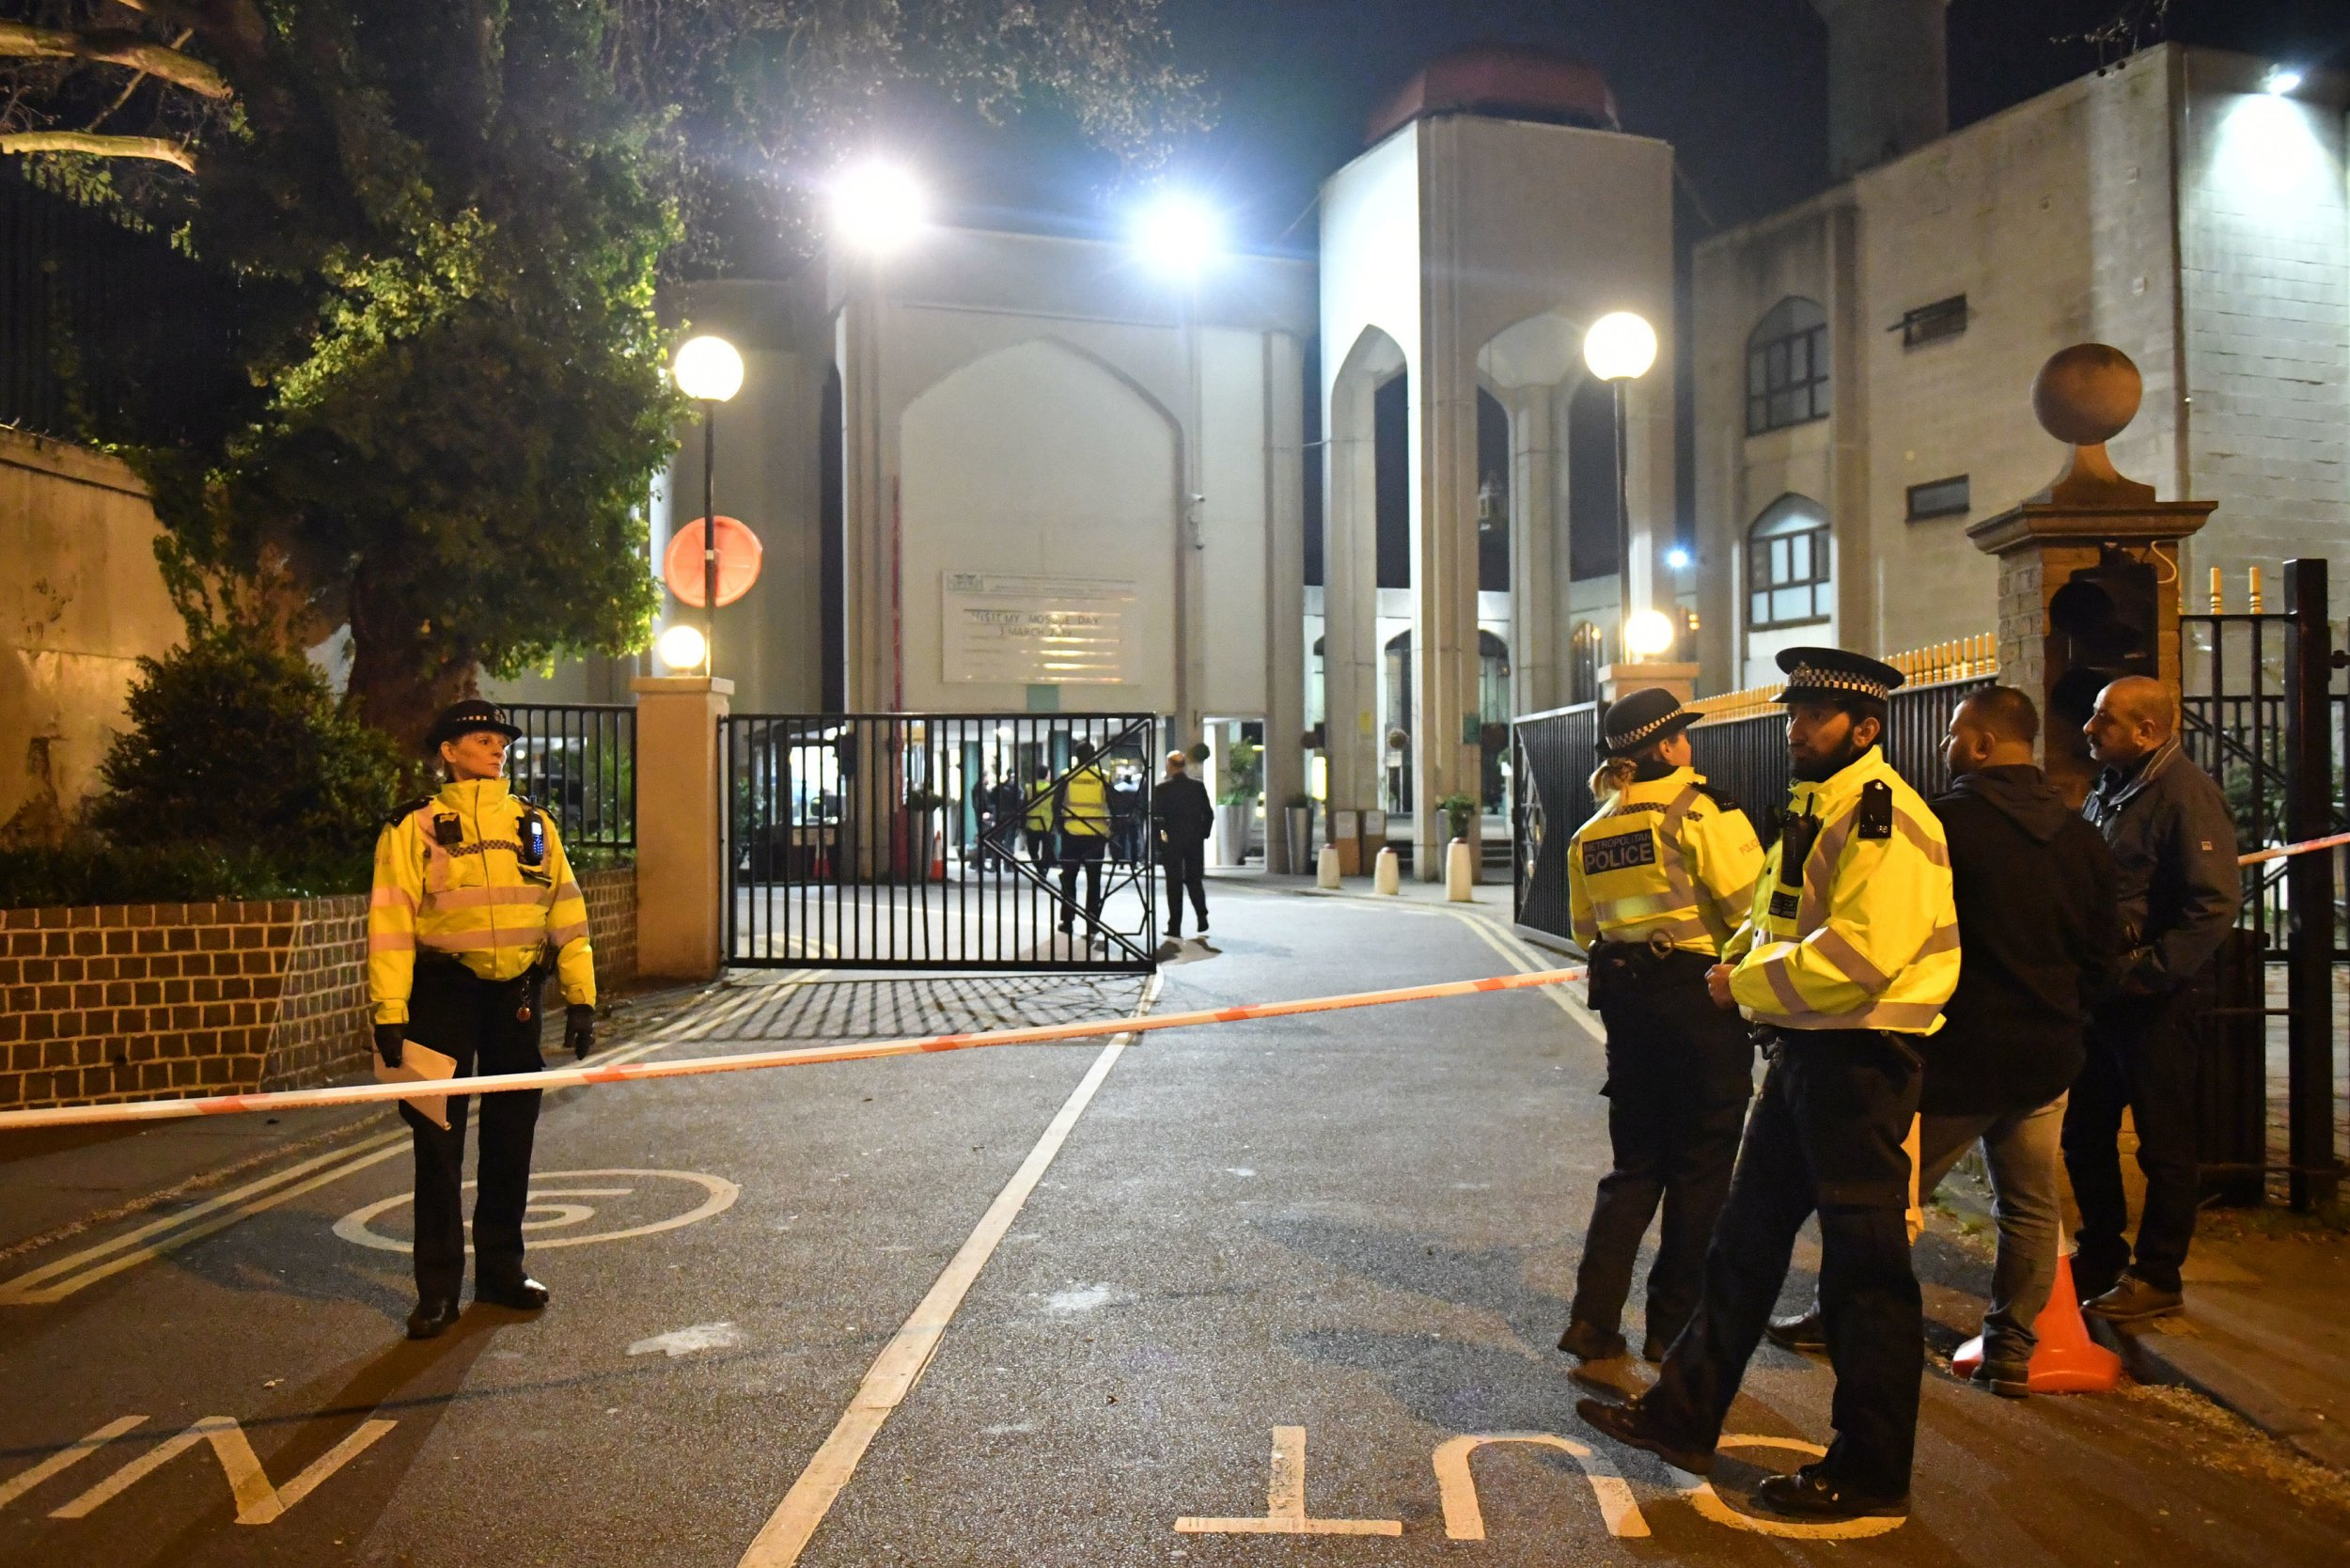 Police activity outside the London Central Mosque, near Regent's Park, London after a man was found with stab injuries in a nearby street. PRESS ASSOCIATION Photo. Picture date: Thursday March 28, 2019. The Metropolitan Police said a man was found with stab wounds in Elmton Court, Cunningham Place, Westminster, at about 6.15pm on Thursday. A spokeswoman for the force confirmed the incident is linked to a police raid at the nearby mosque. See PA story POLICE Cunningham. Photo credit should read: Dominic Lipinski/PA Wire